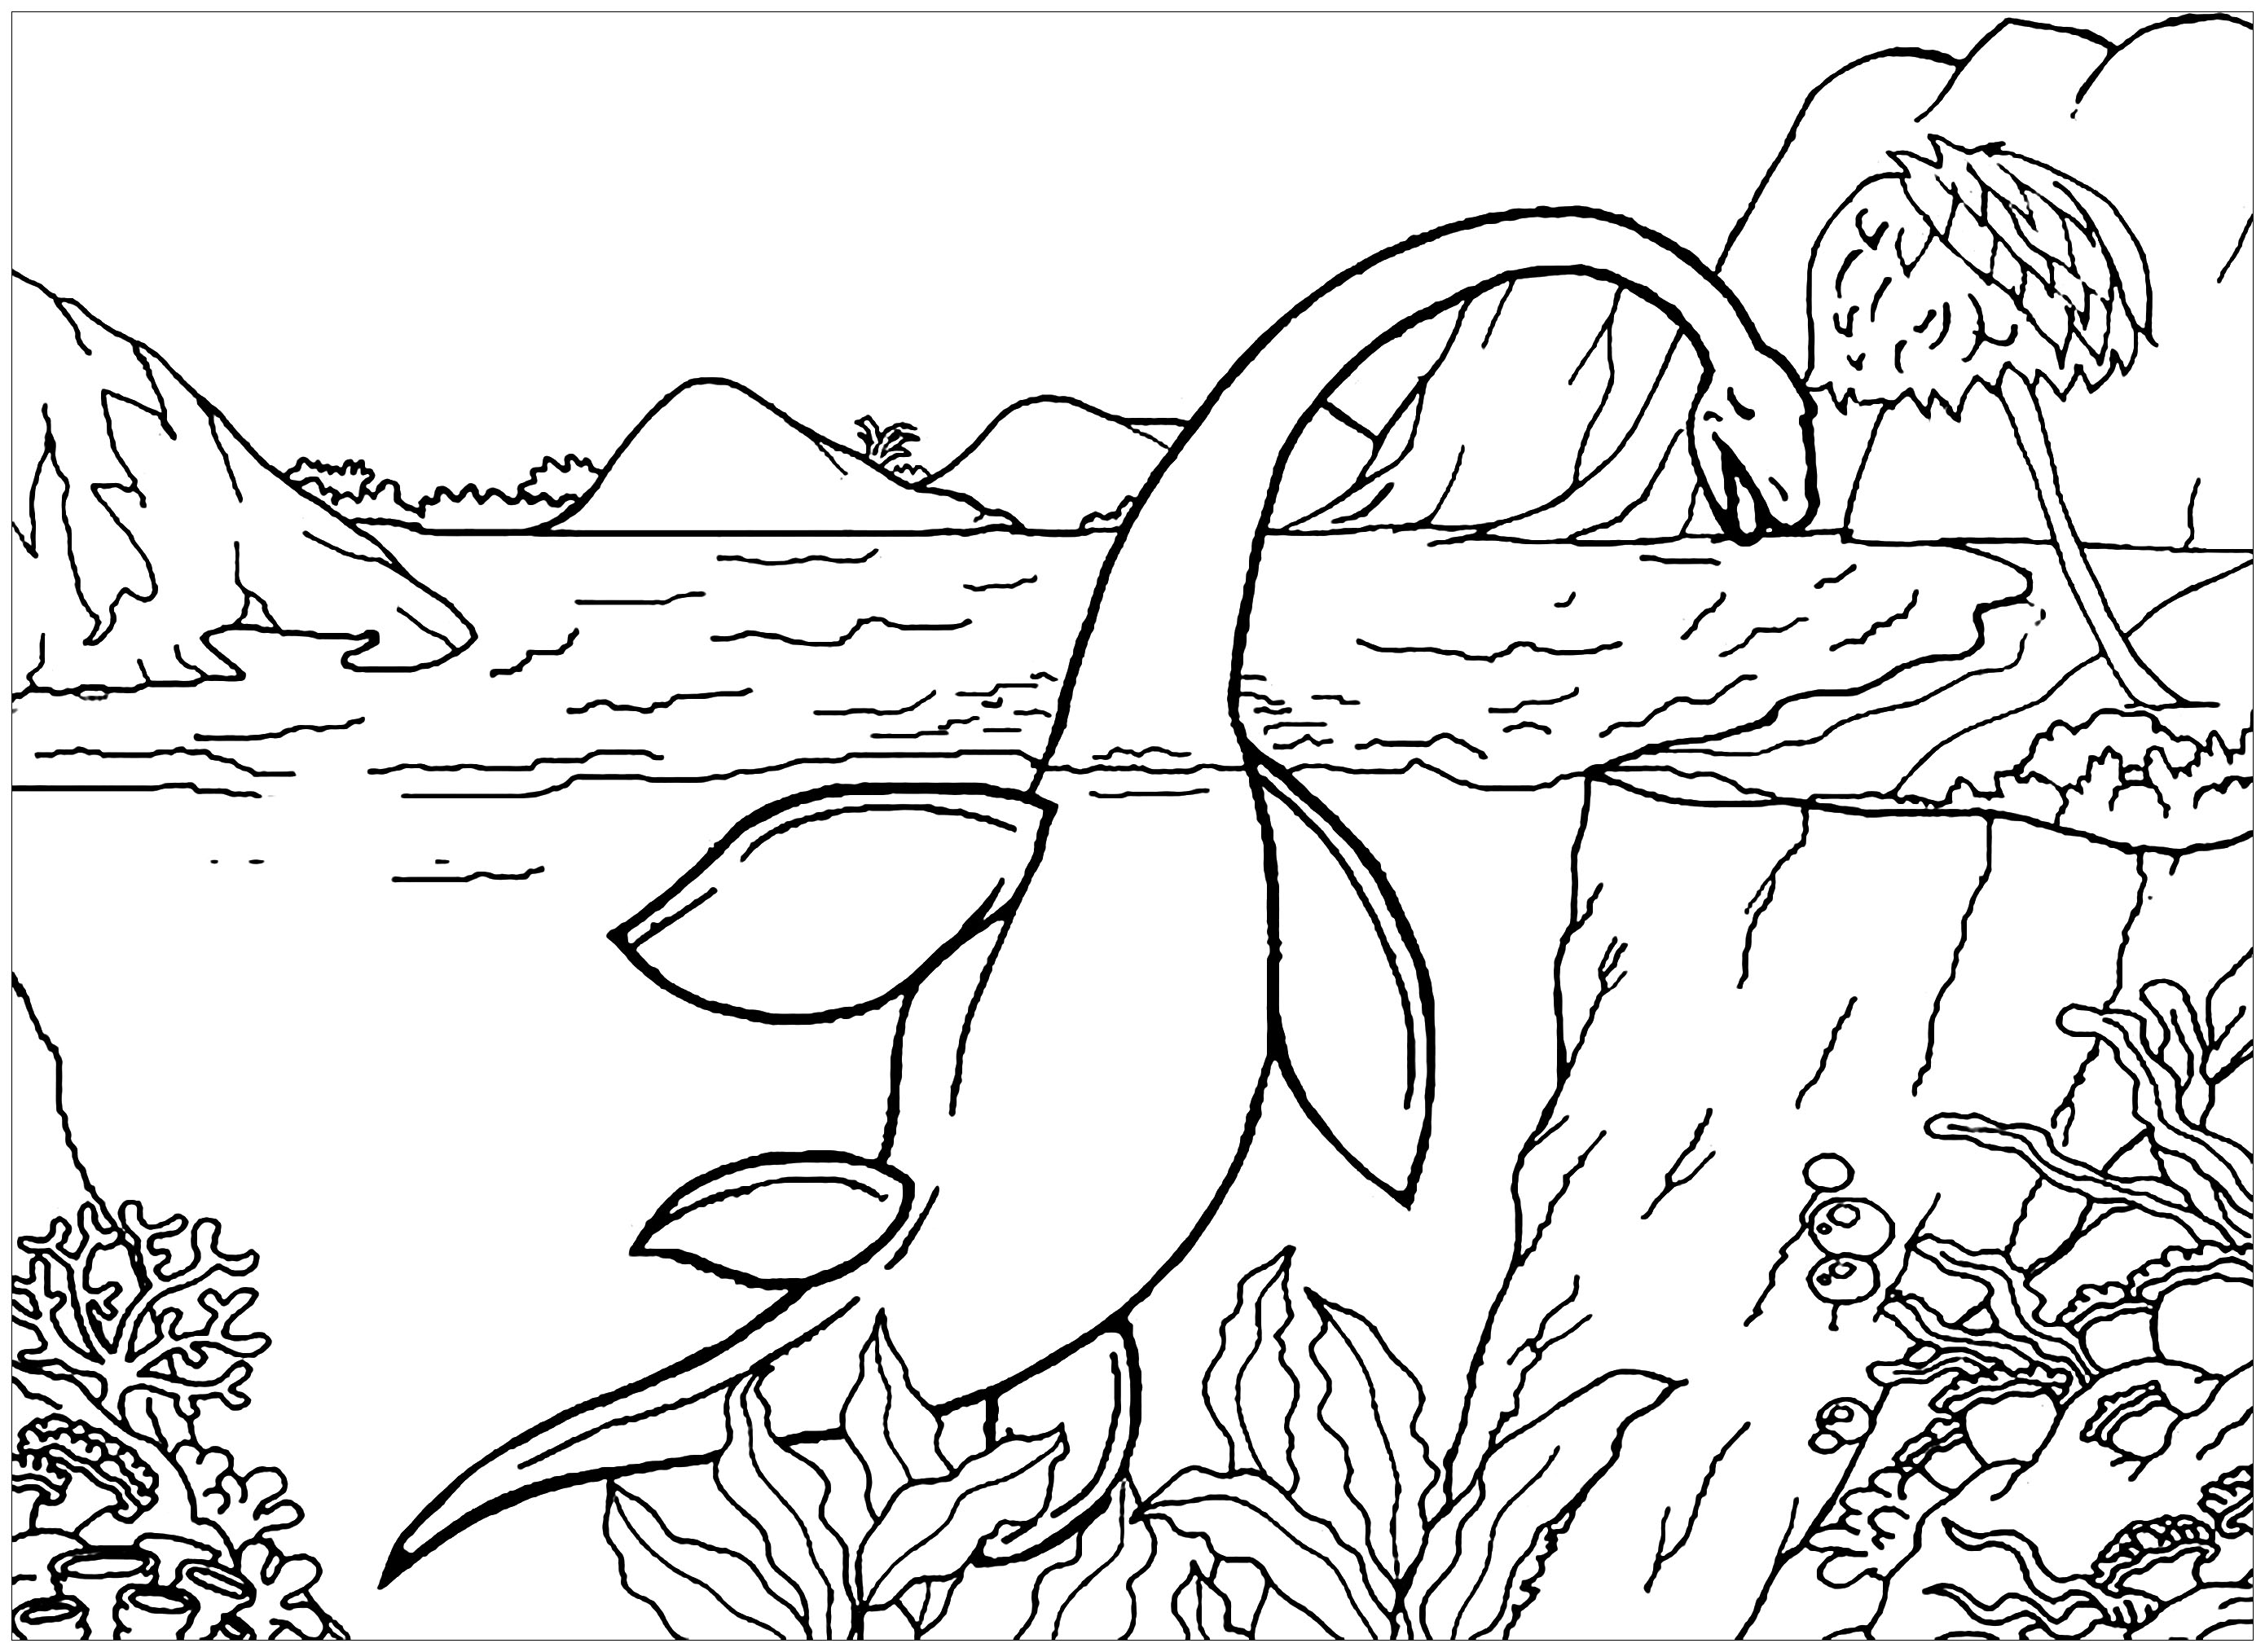 coloring pages : Dinosaur Coloring Books For Toddlers Fresh ... | 2028x2780